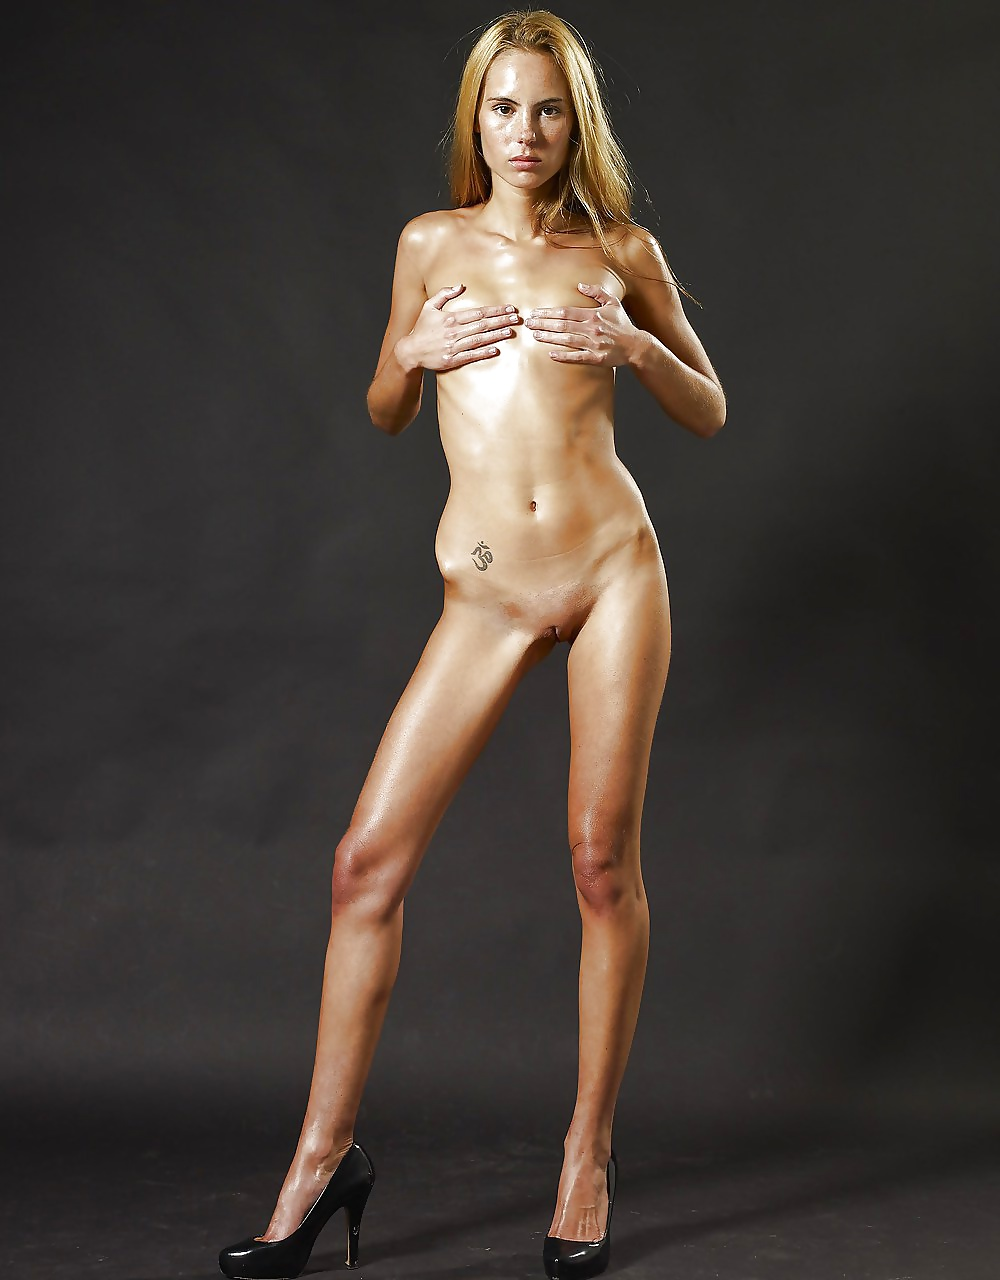 Naked pictures of super skinny women